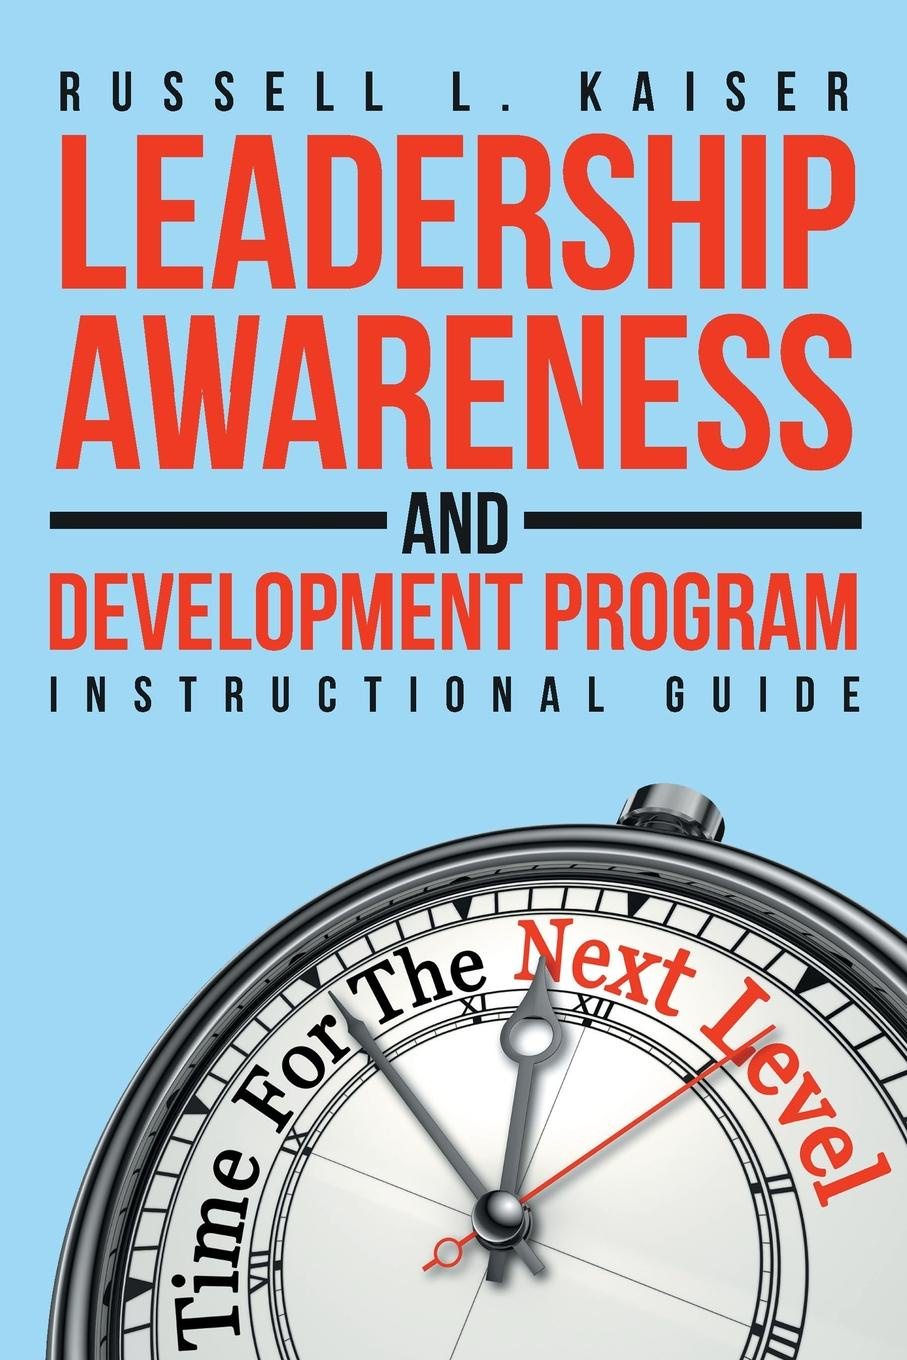 Russell L. Kaiser Leadership Awareness and Development Program. Instructional Guide suzanne morse w smart communities how citizens and local leaders can use strategic thinking to build a brighter future